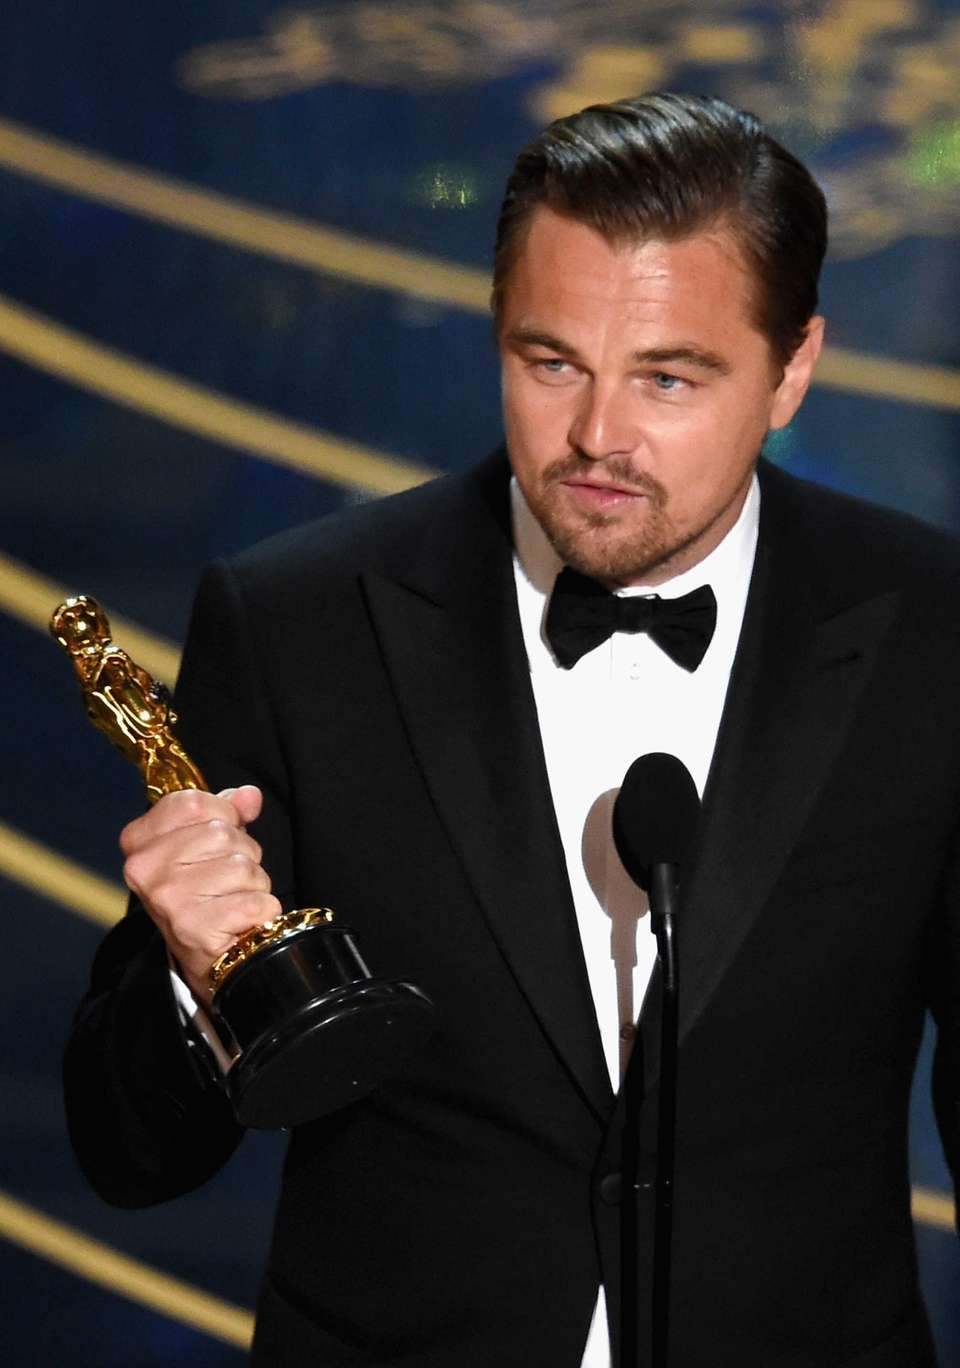 Actor Leonardo DiCaprio accepts the Oscar statuette for